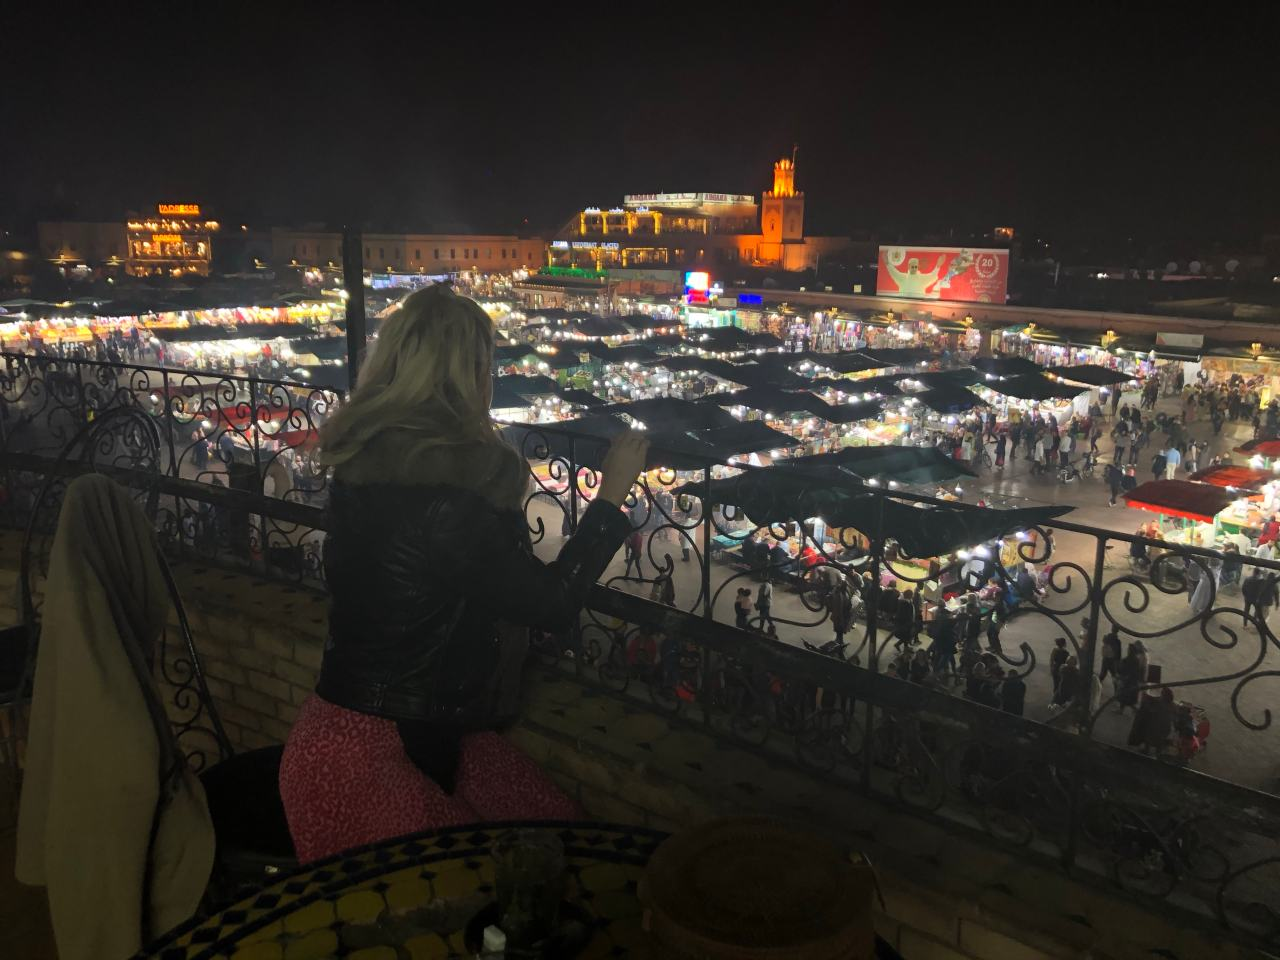 The main square in Marrakech at night from above